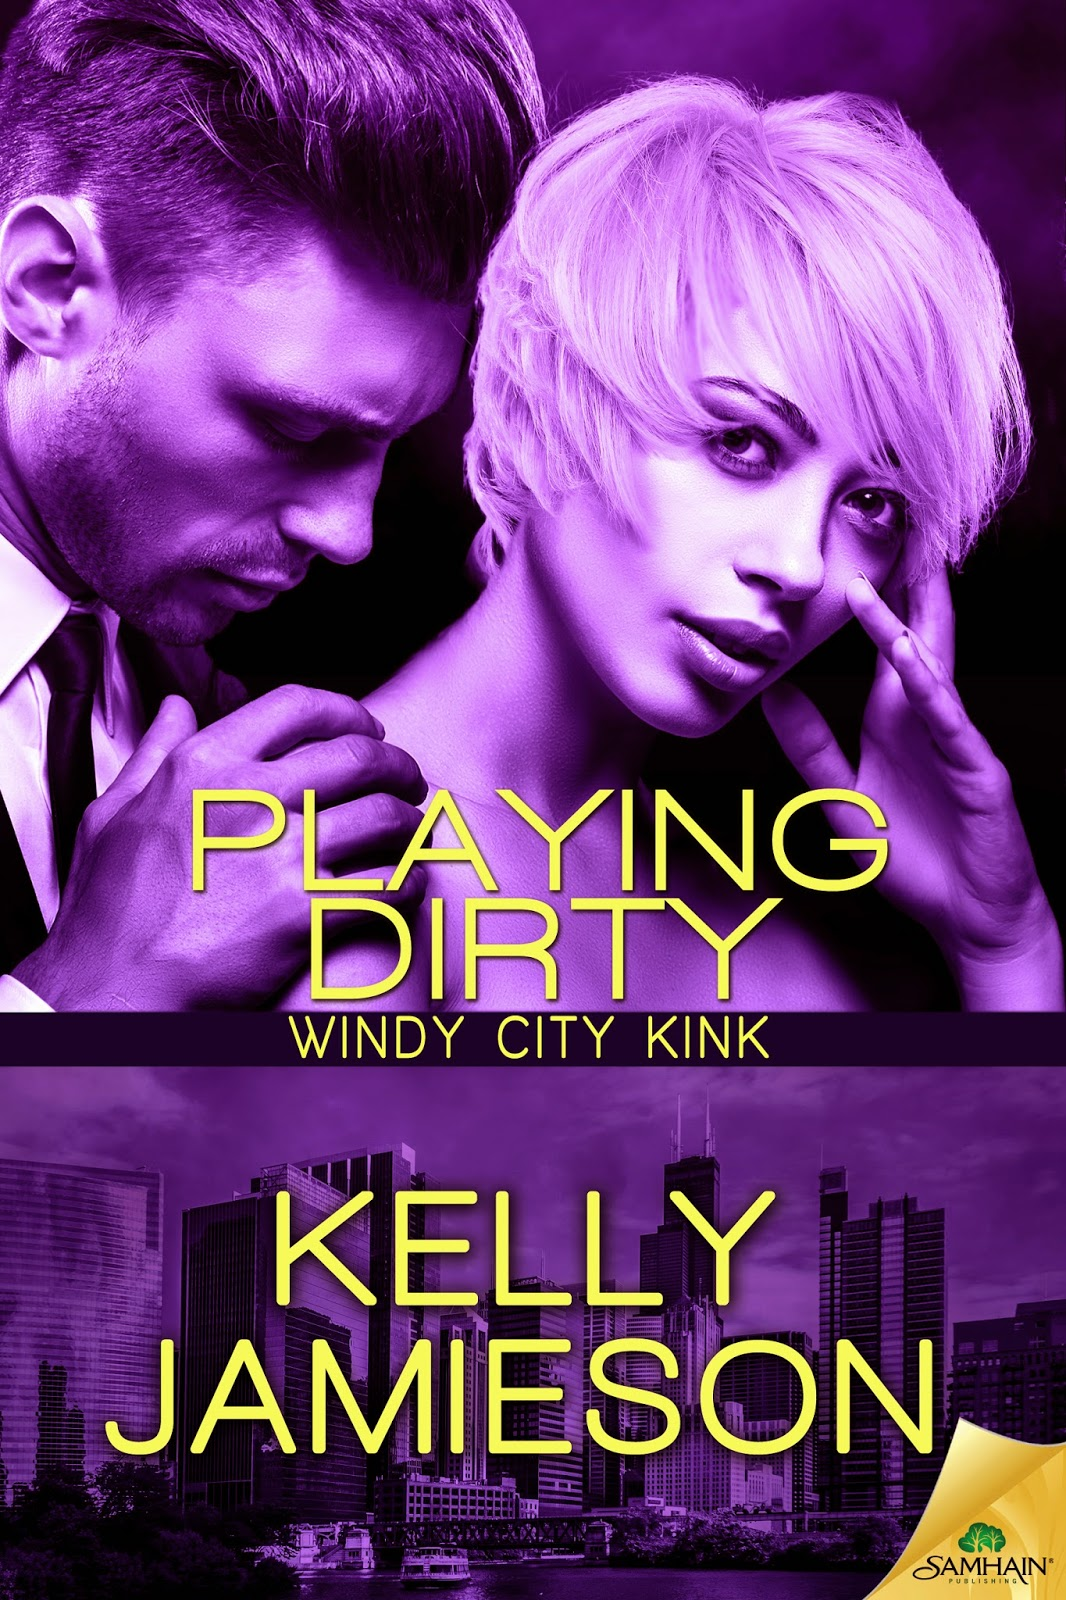 http://www.amazon.com/Playing-Dirty-Windy-City-Kink-ebook/dp/B00NPSOCE4/ref=sr_1_1?ie=UTF8&qid=1423014364&sr=8-1&keywords=playing+dirty+kelly+jamieson